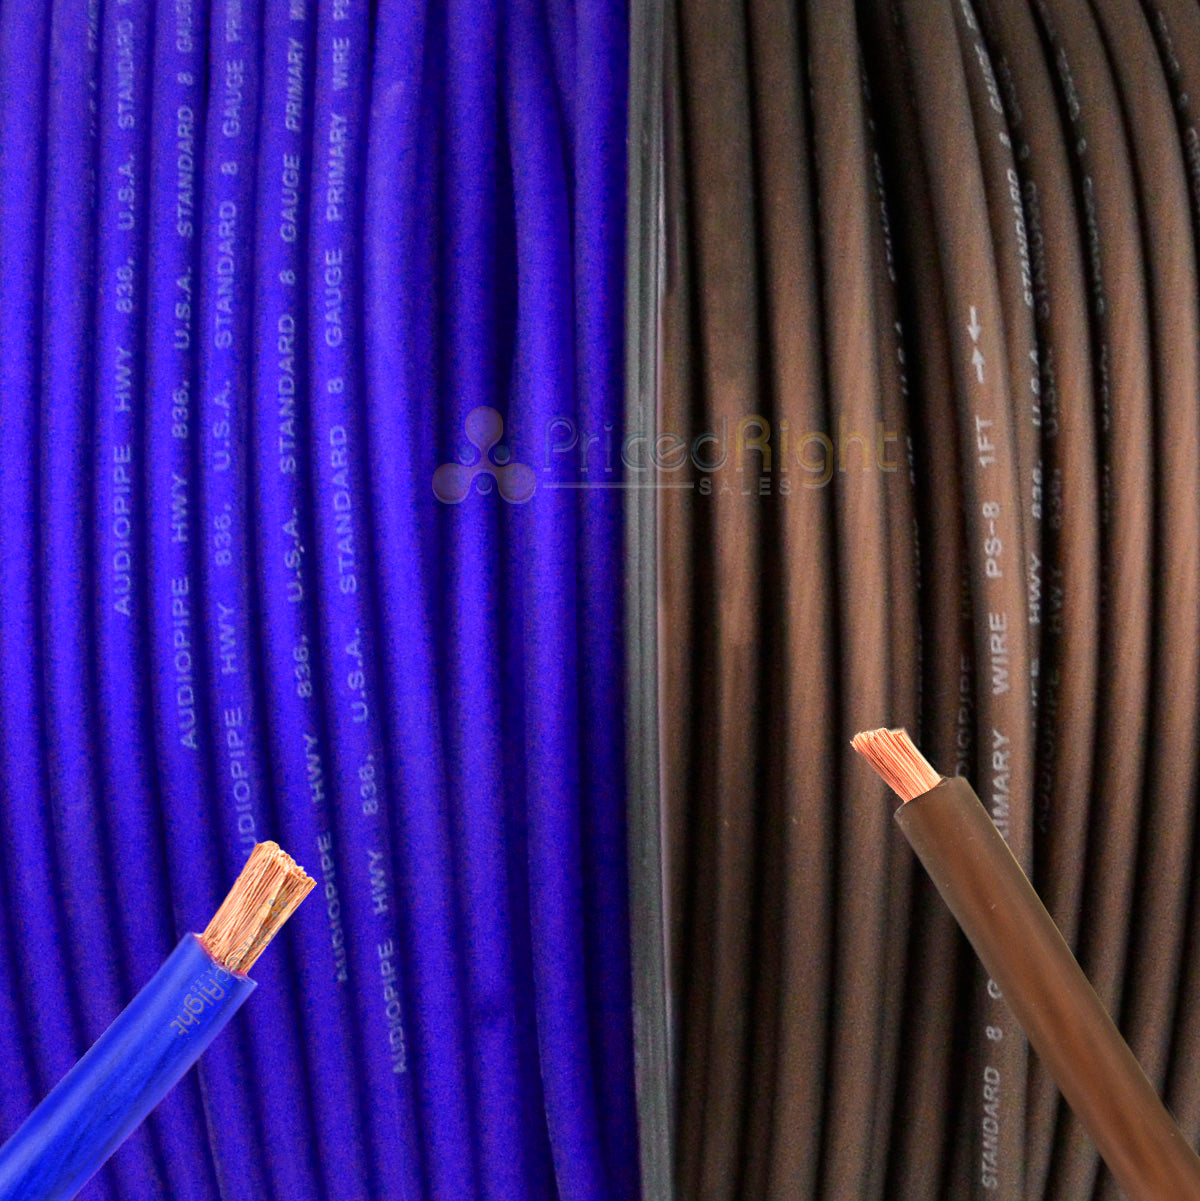 200' Super Flexible 8 Gauge Power Wire Speaker Wire Cable 100' Blue 100 ft Black